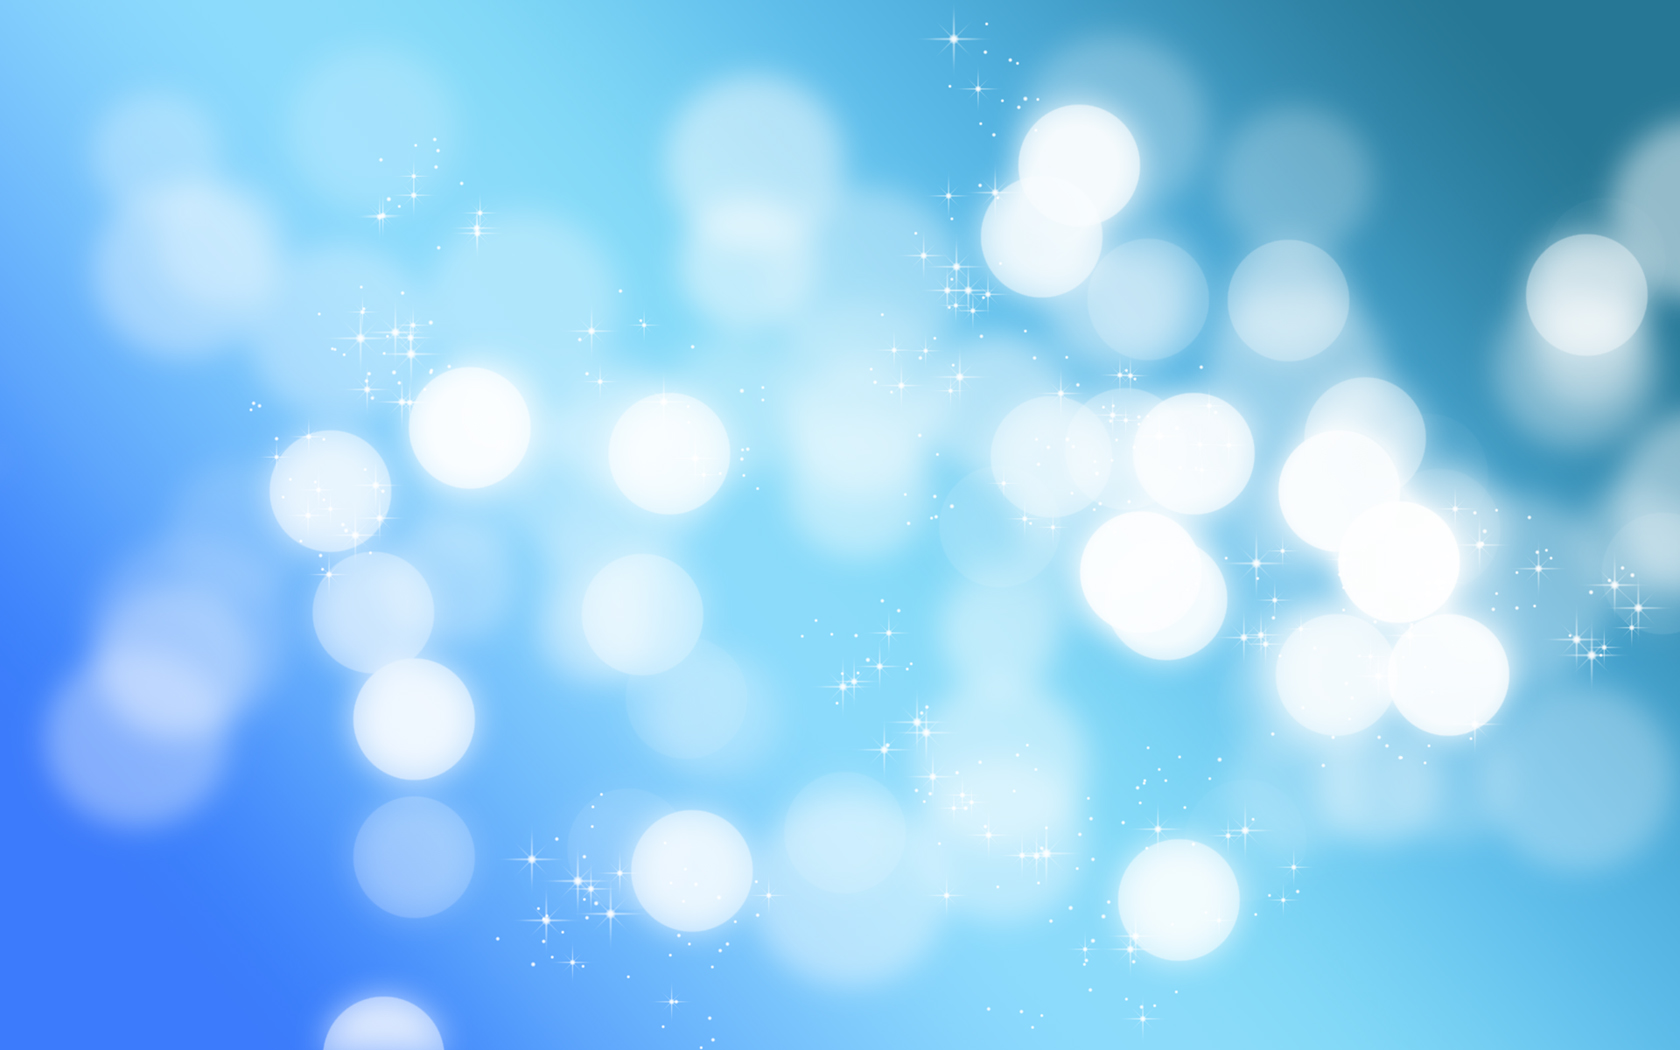 all hd wallpaper bokeh - photo #43